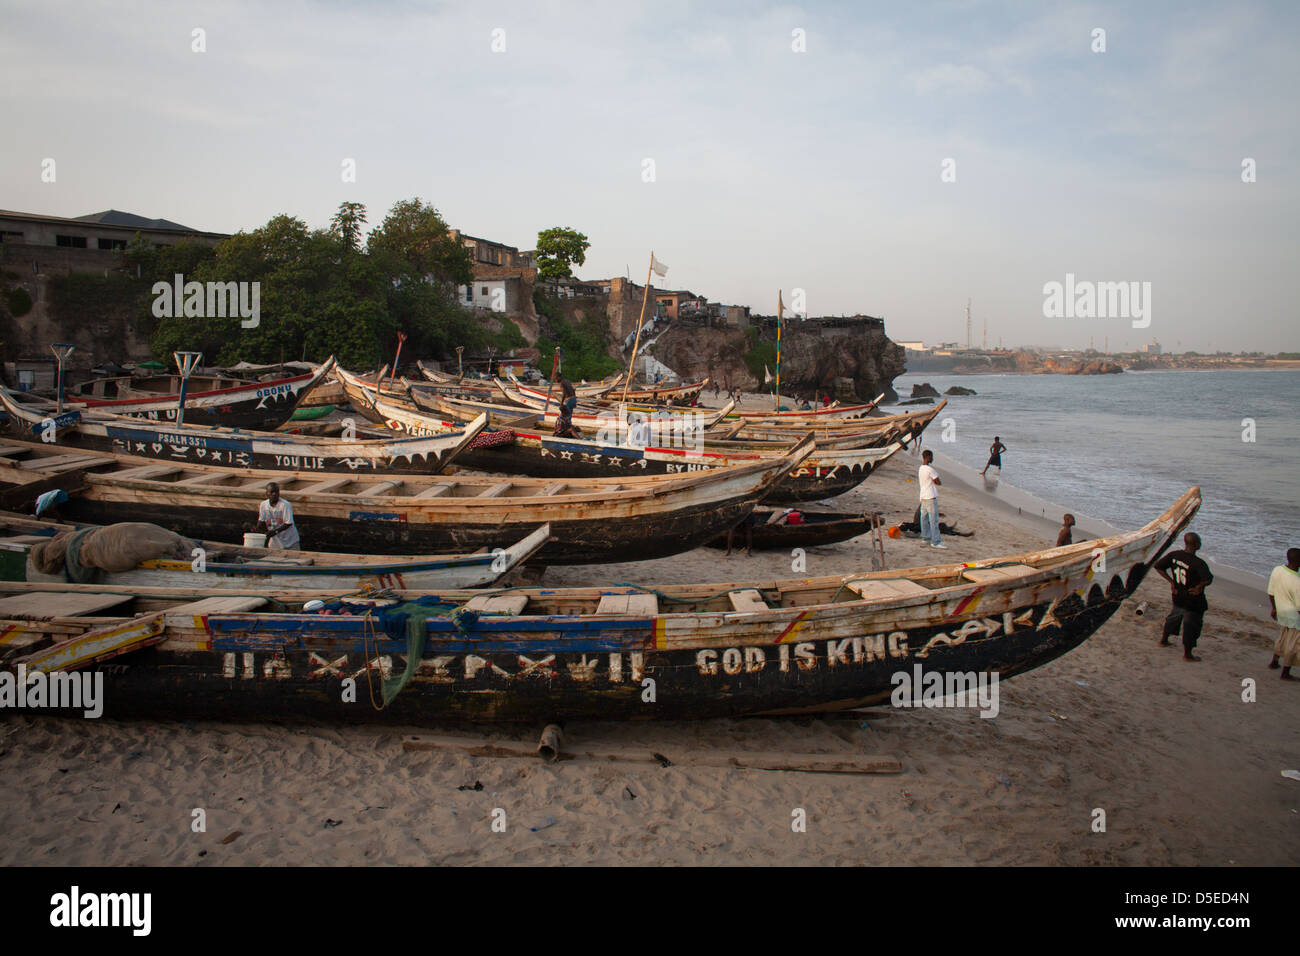 Fishing boats on the beach in Accra, Ghana. - Stock Image